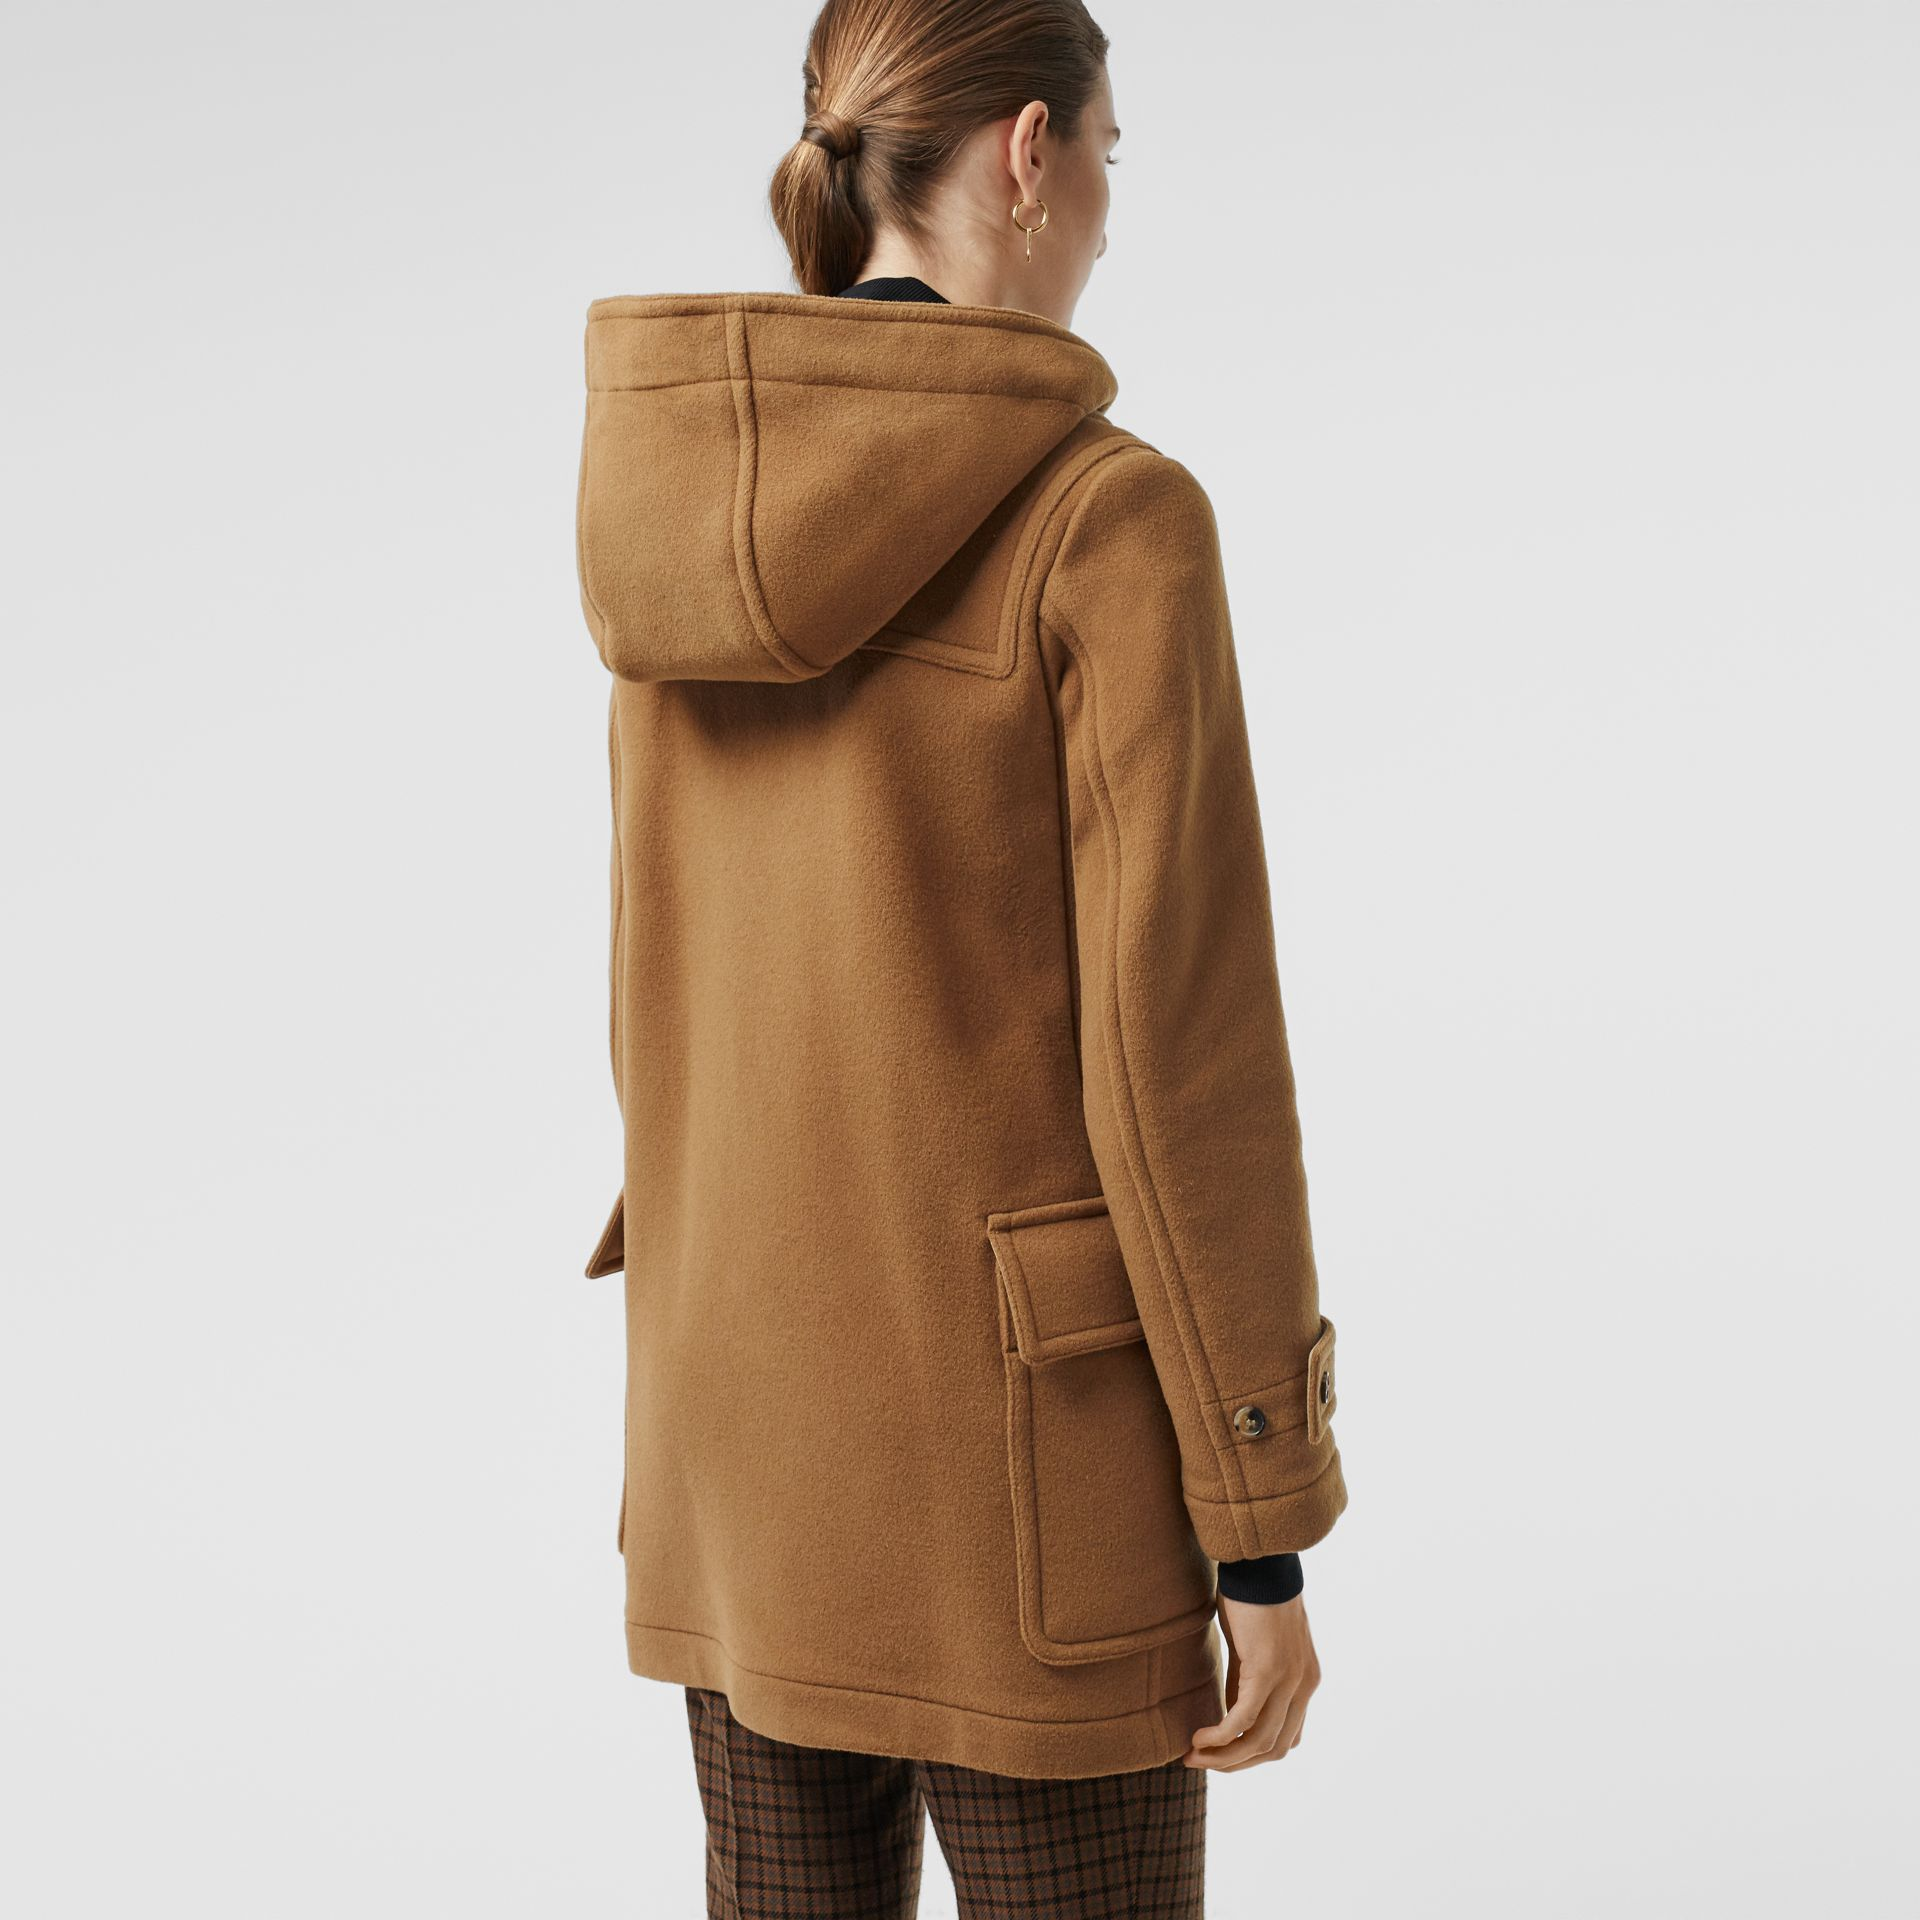 Wool Blend Duffle Coat in Camel - Women | Burberry United Kingdom - gallery image 2